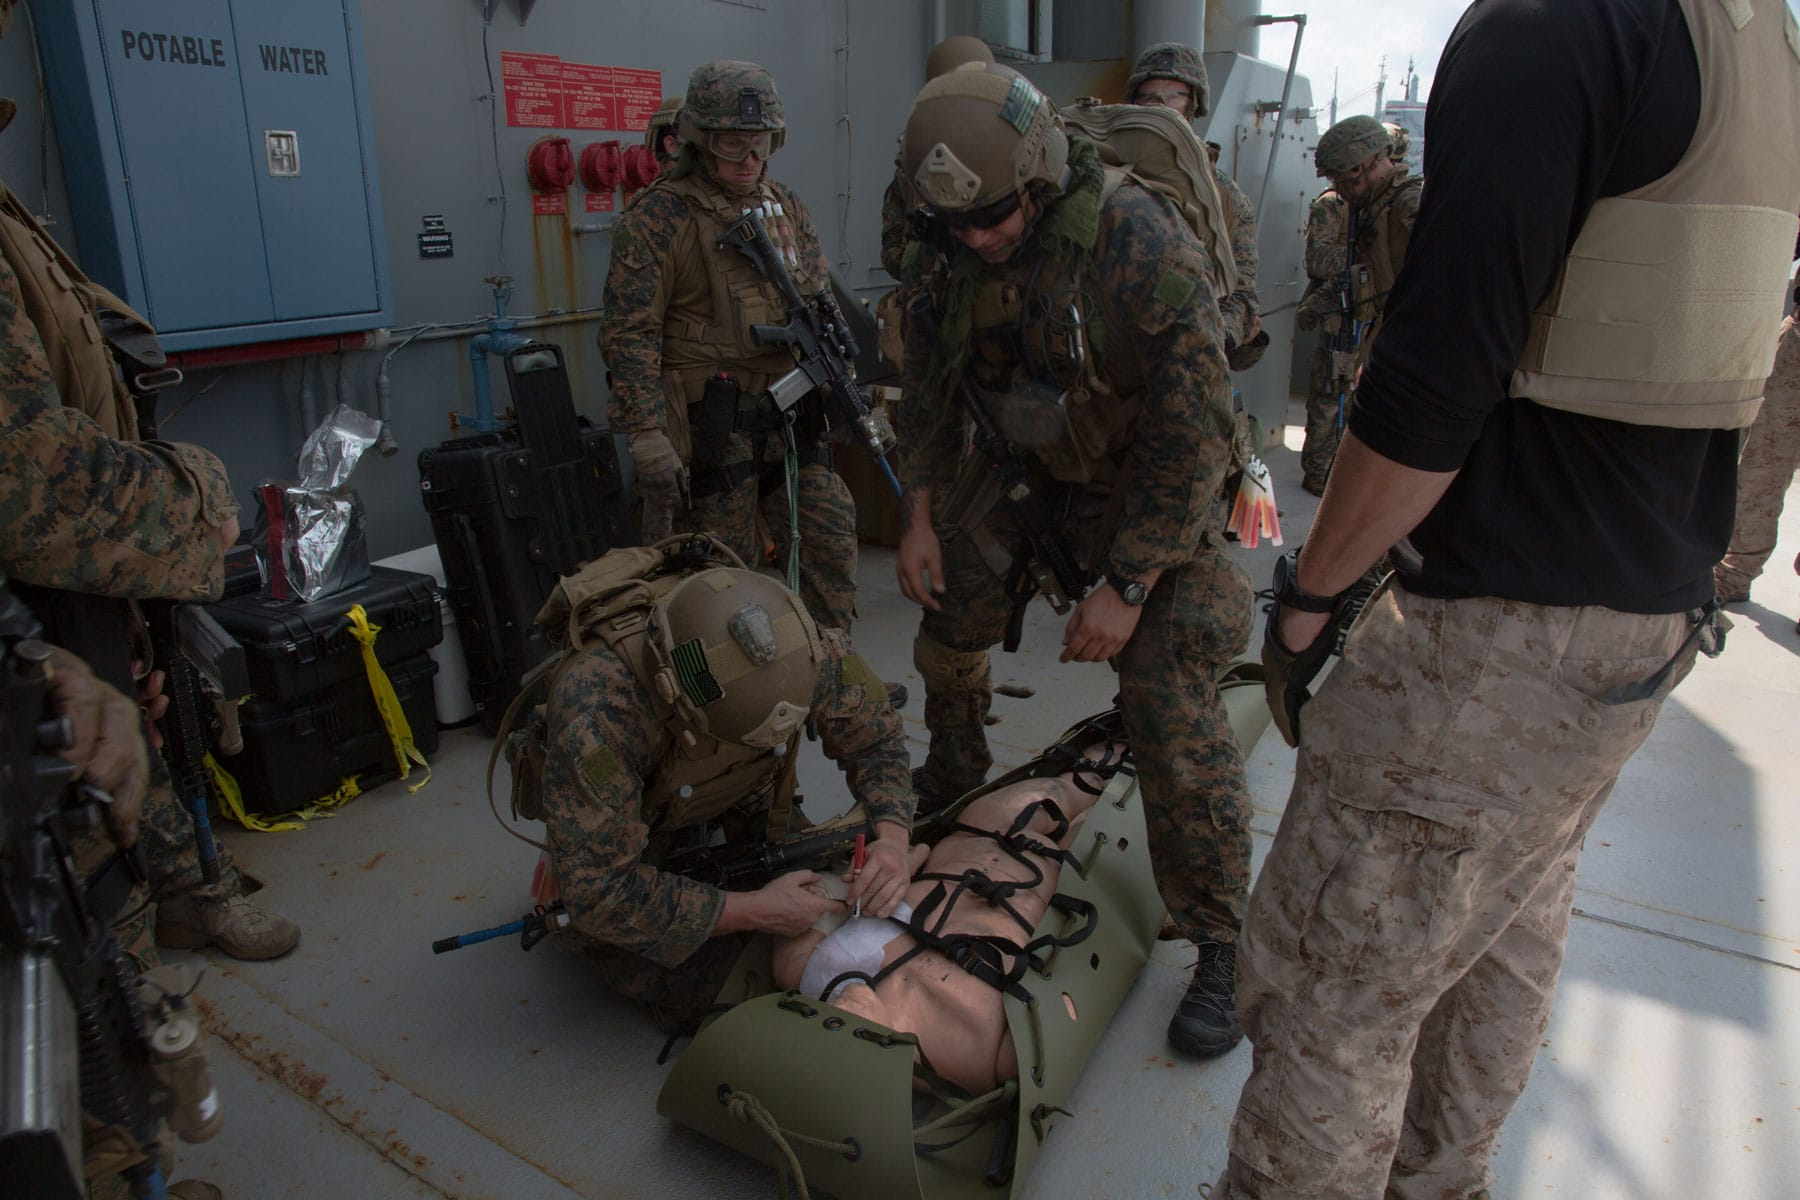 U.S. Marines with the Maritime Raid Force (MRF), 26th Marine Expeditionary Unit (MEU), provide care to a simulated casualty during visit, board, search and seizure (VBSS) training at Fort Eustis, VA.